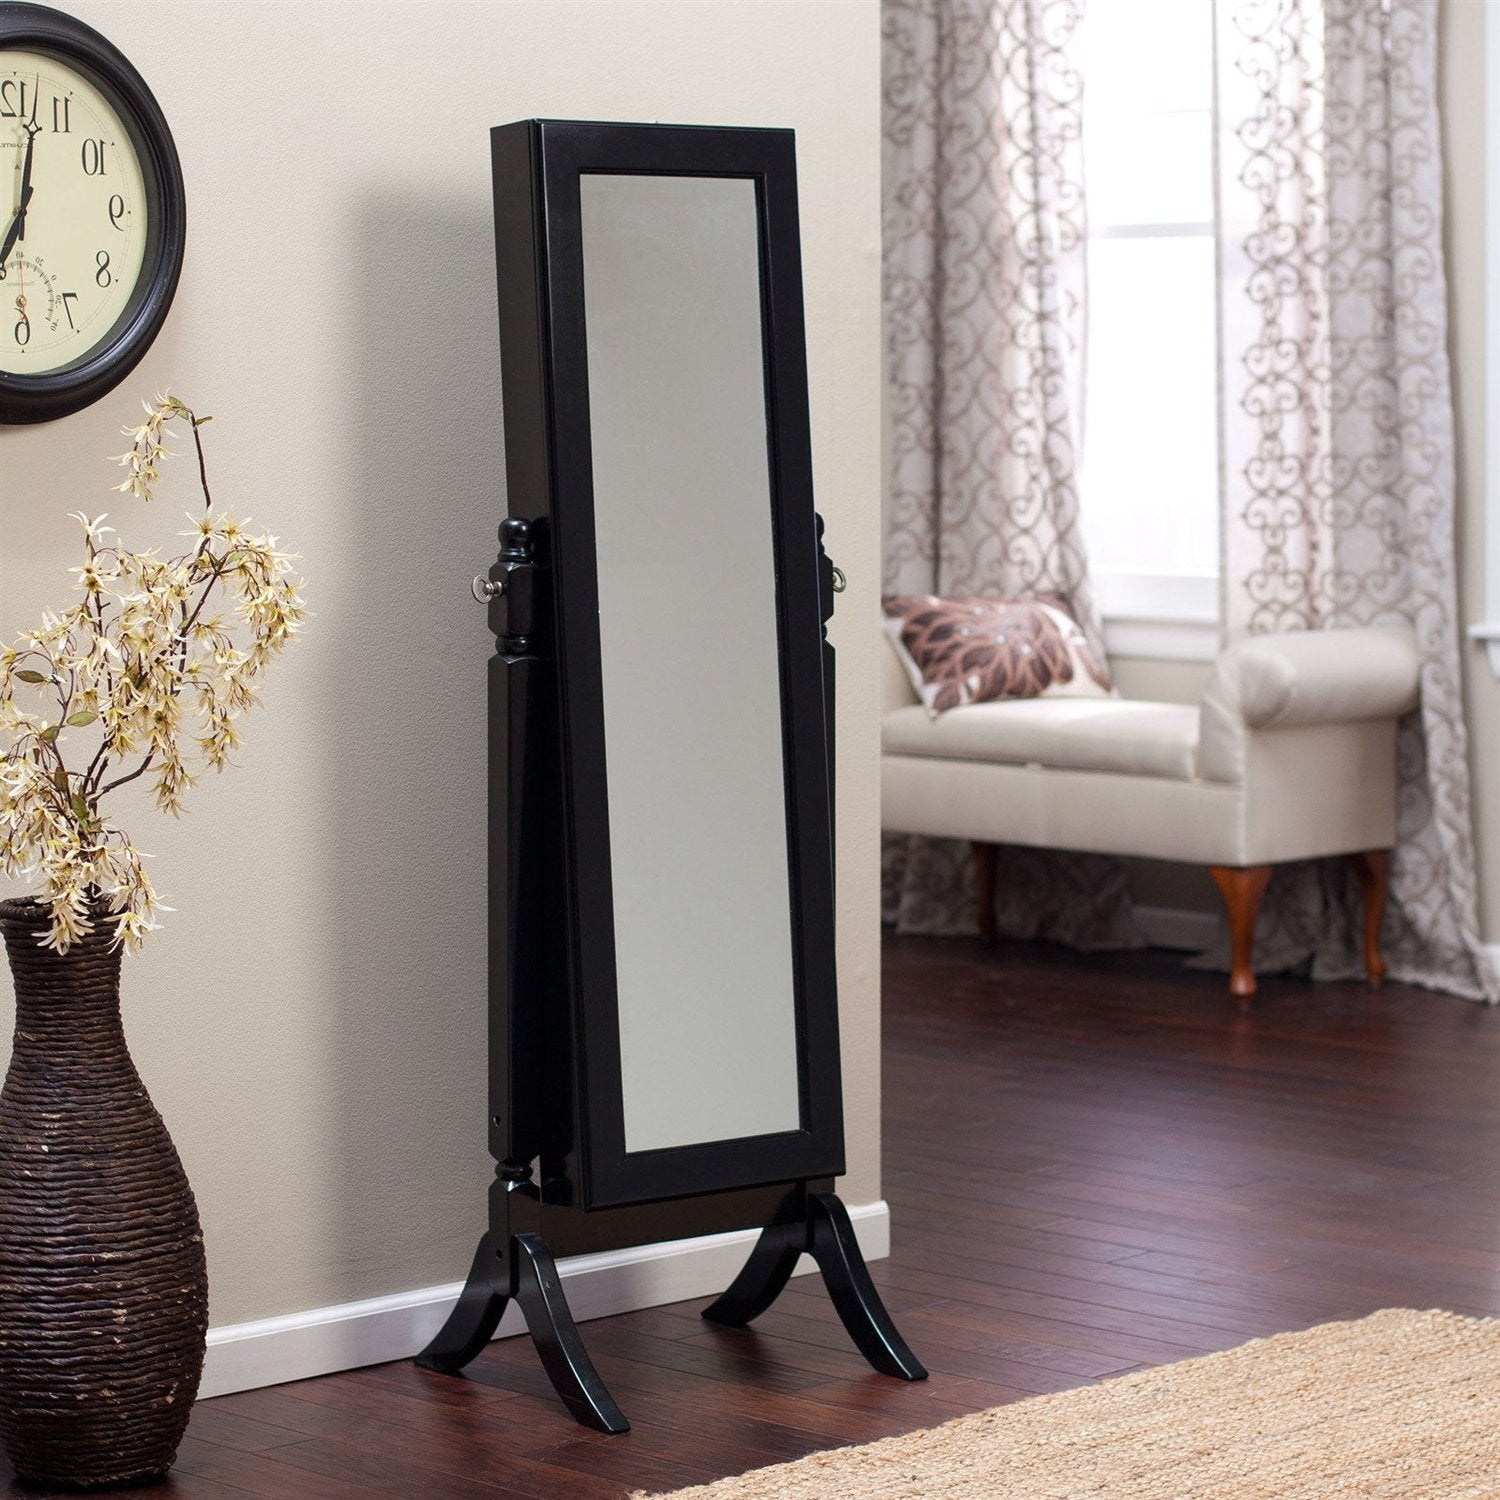 Full Length Tilting Cheval Mirror Jewelry Armoire in Black Wood Finish